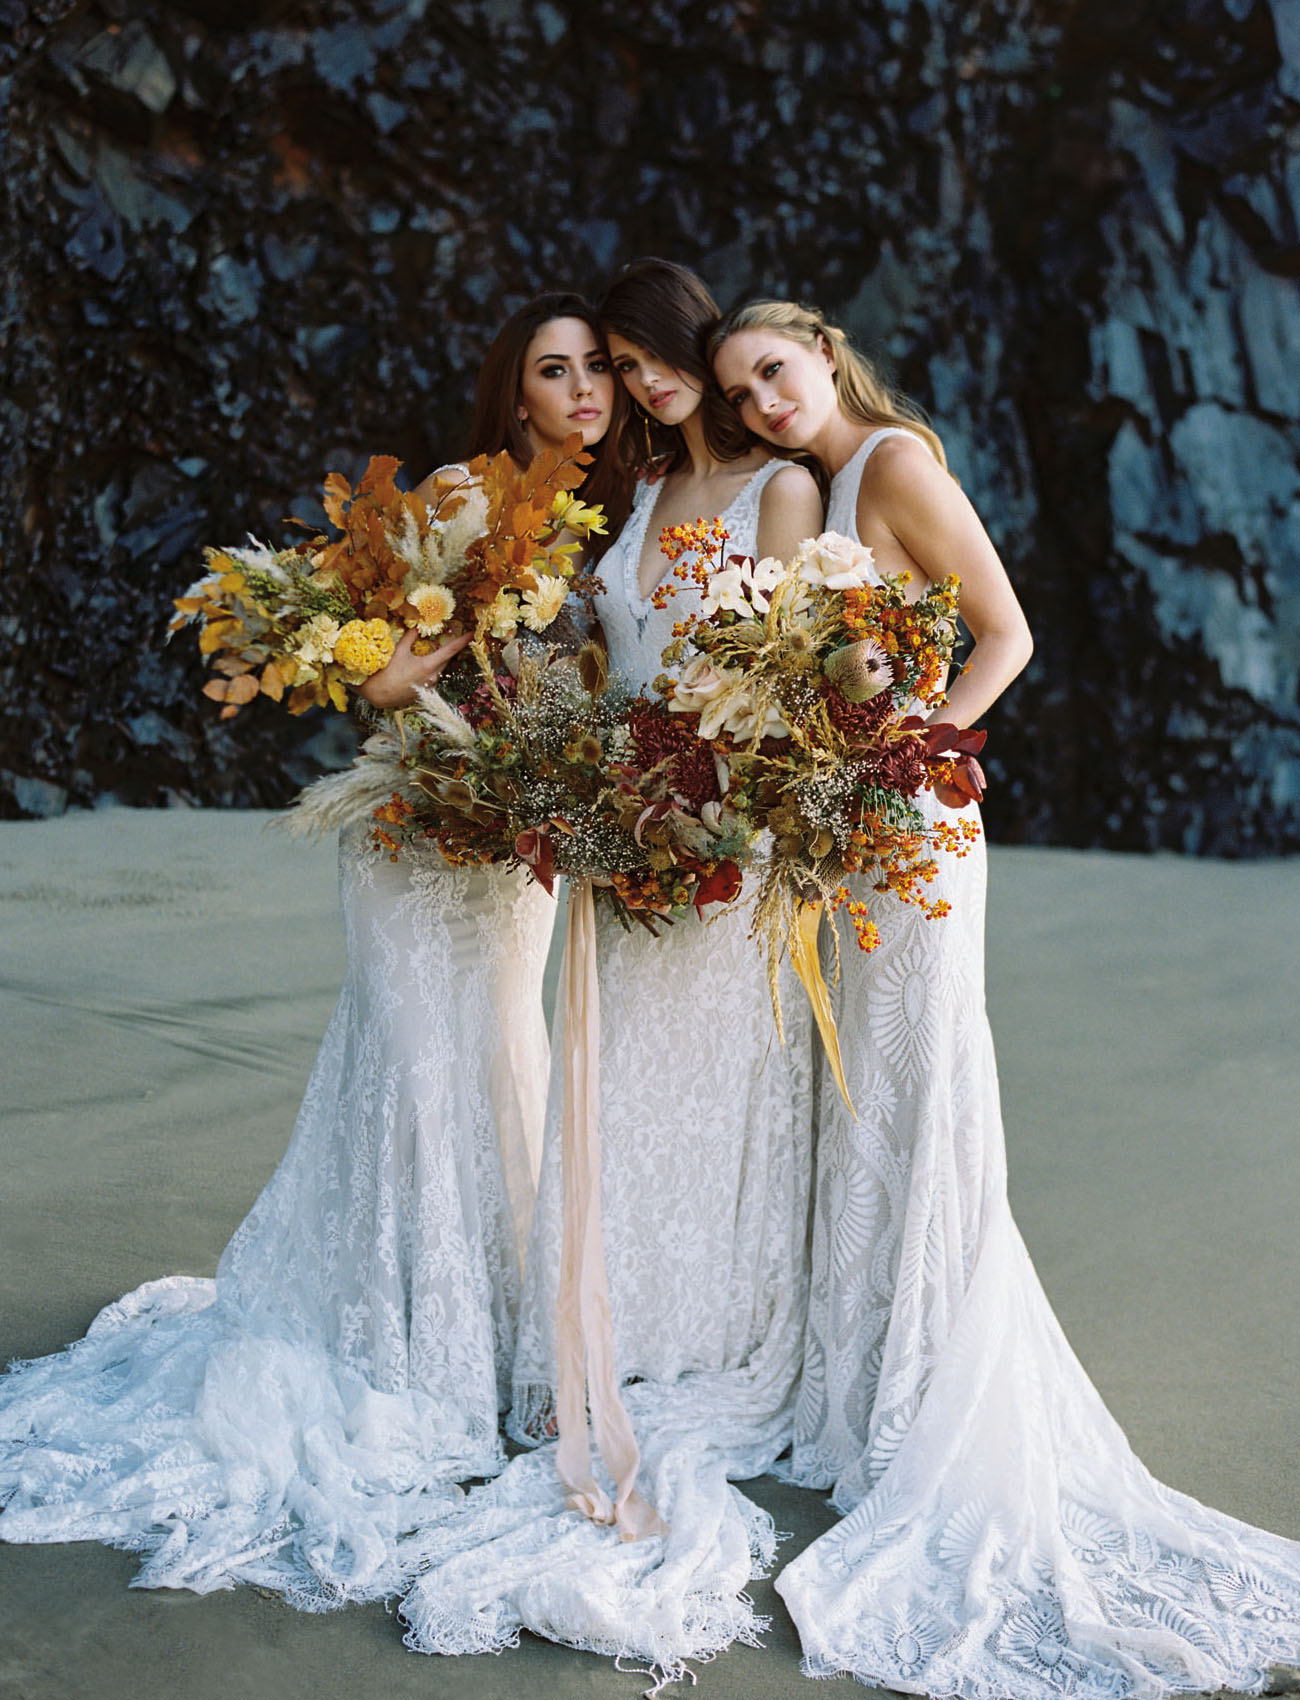 bc0e659c2e8f7 Wilderly Bride: Free Spirited Boho Wedding Dresses by Allure Bridals ...